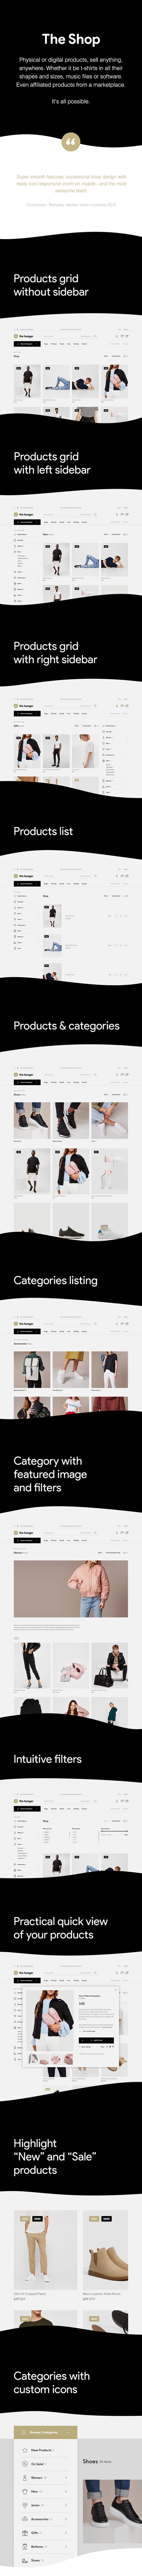 The Hanger - eCommerce WordPress Theme for WooCommerce - 8